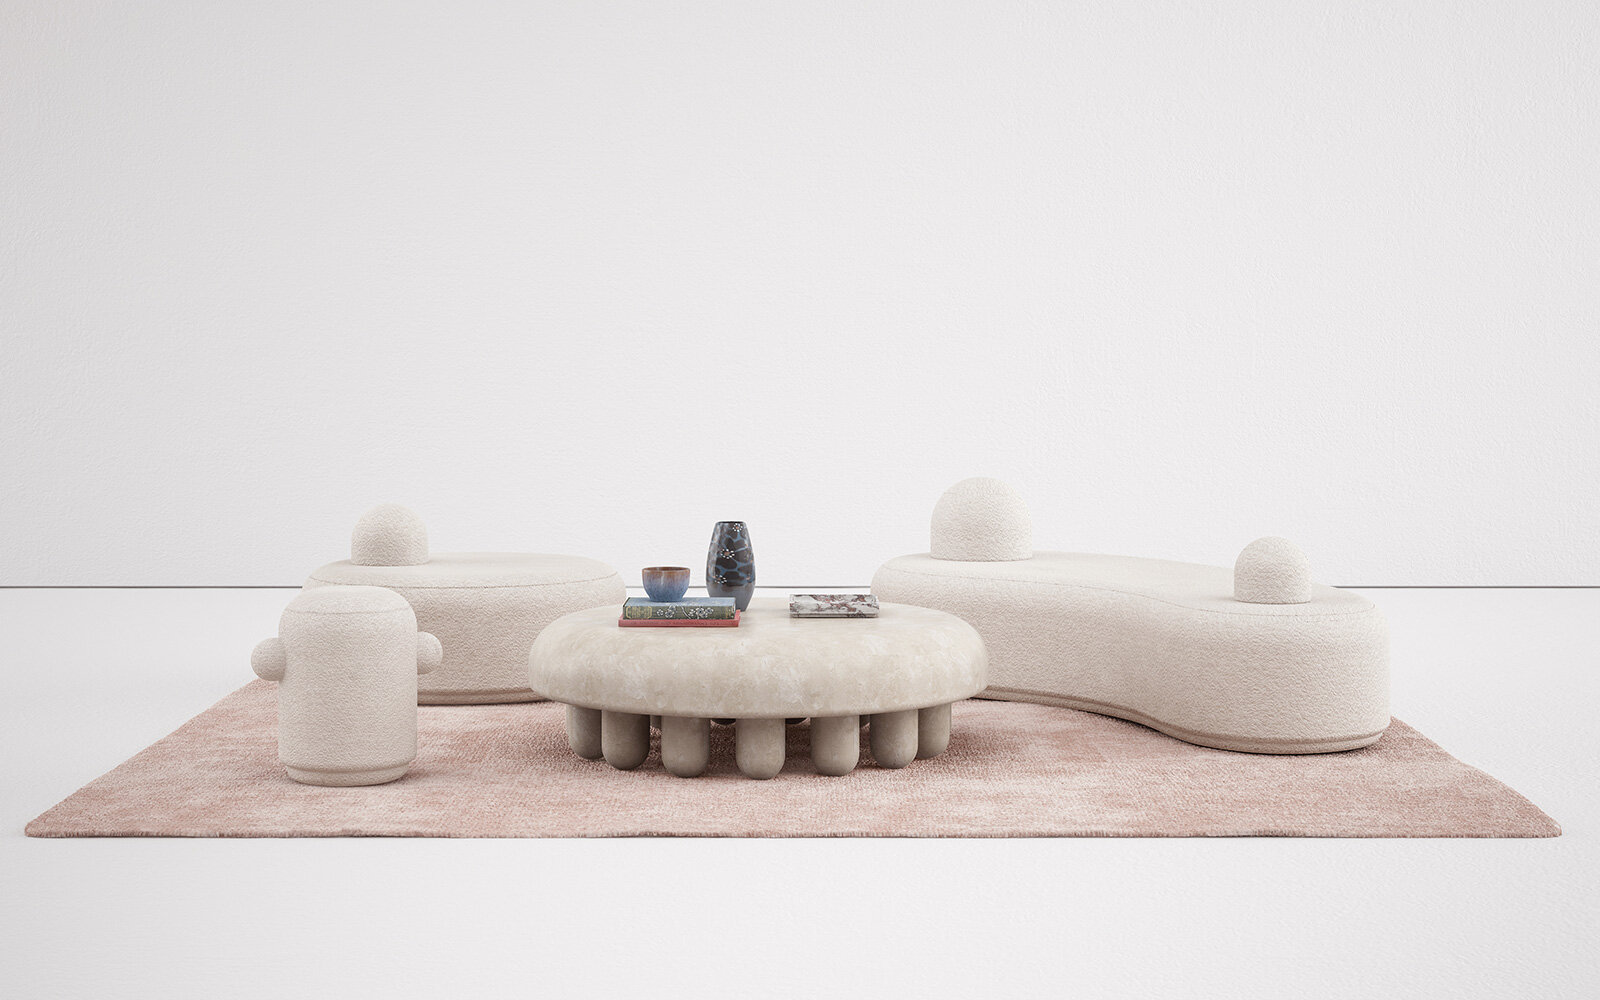 The  Orsetto  collection by Martin Massé for Kolkhoze. The coffee table is travertine, the upholstery is in Dedar wool boucle.